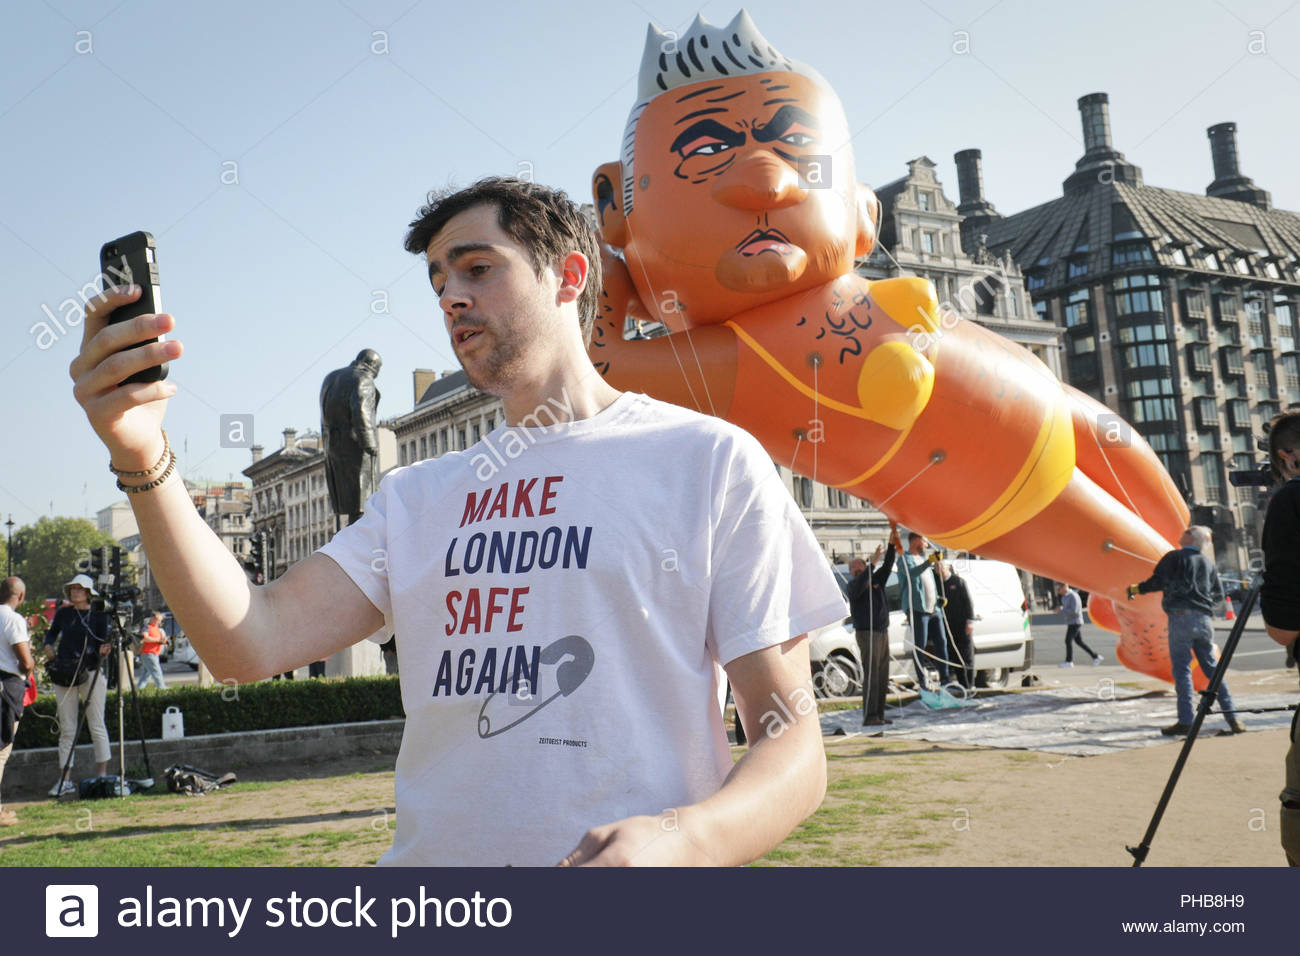 London, UK. 1st September 2018. Yanny Bruere the blimp organiser and free speech advocate takes a selfie. Giant blimp of London Mayor Sadiq Khan wearing a yellow bikini is inflated ready to fly over Parliament square. Credit: Guy Corbishley/Alamy Live News - Stock Image